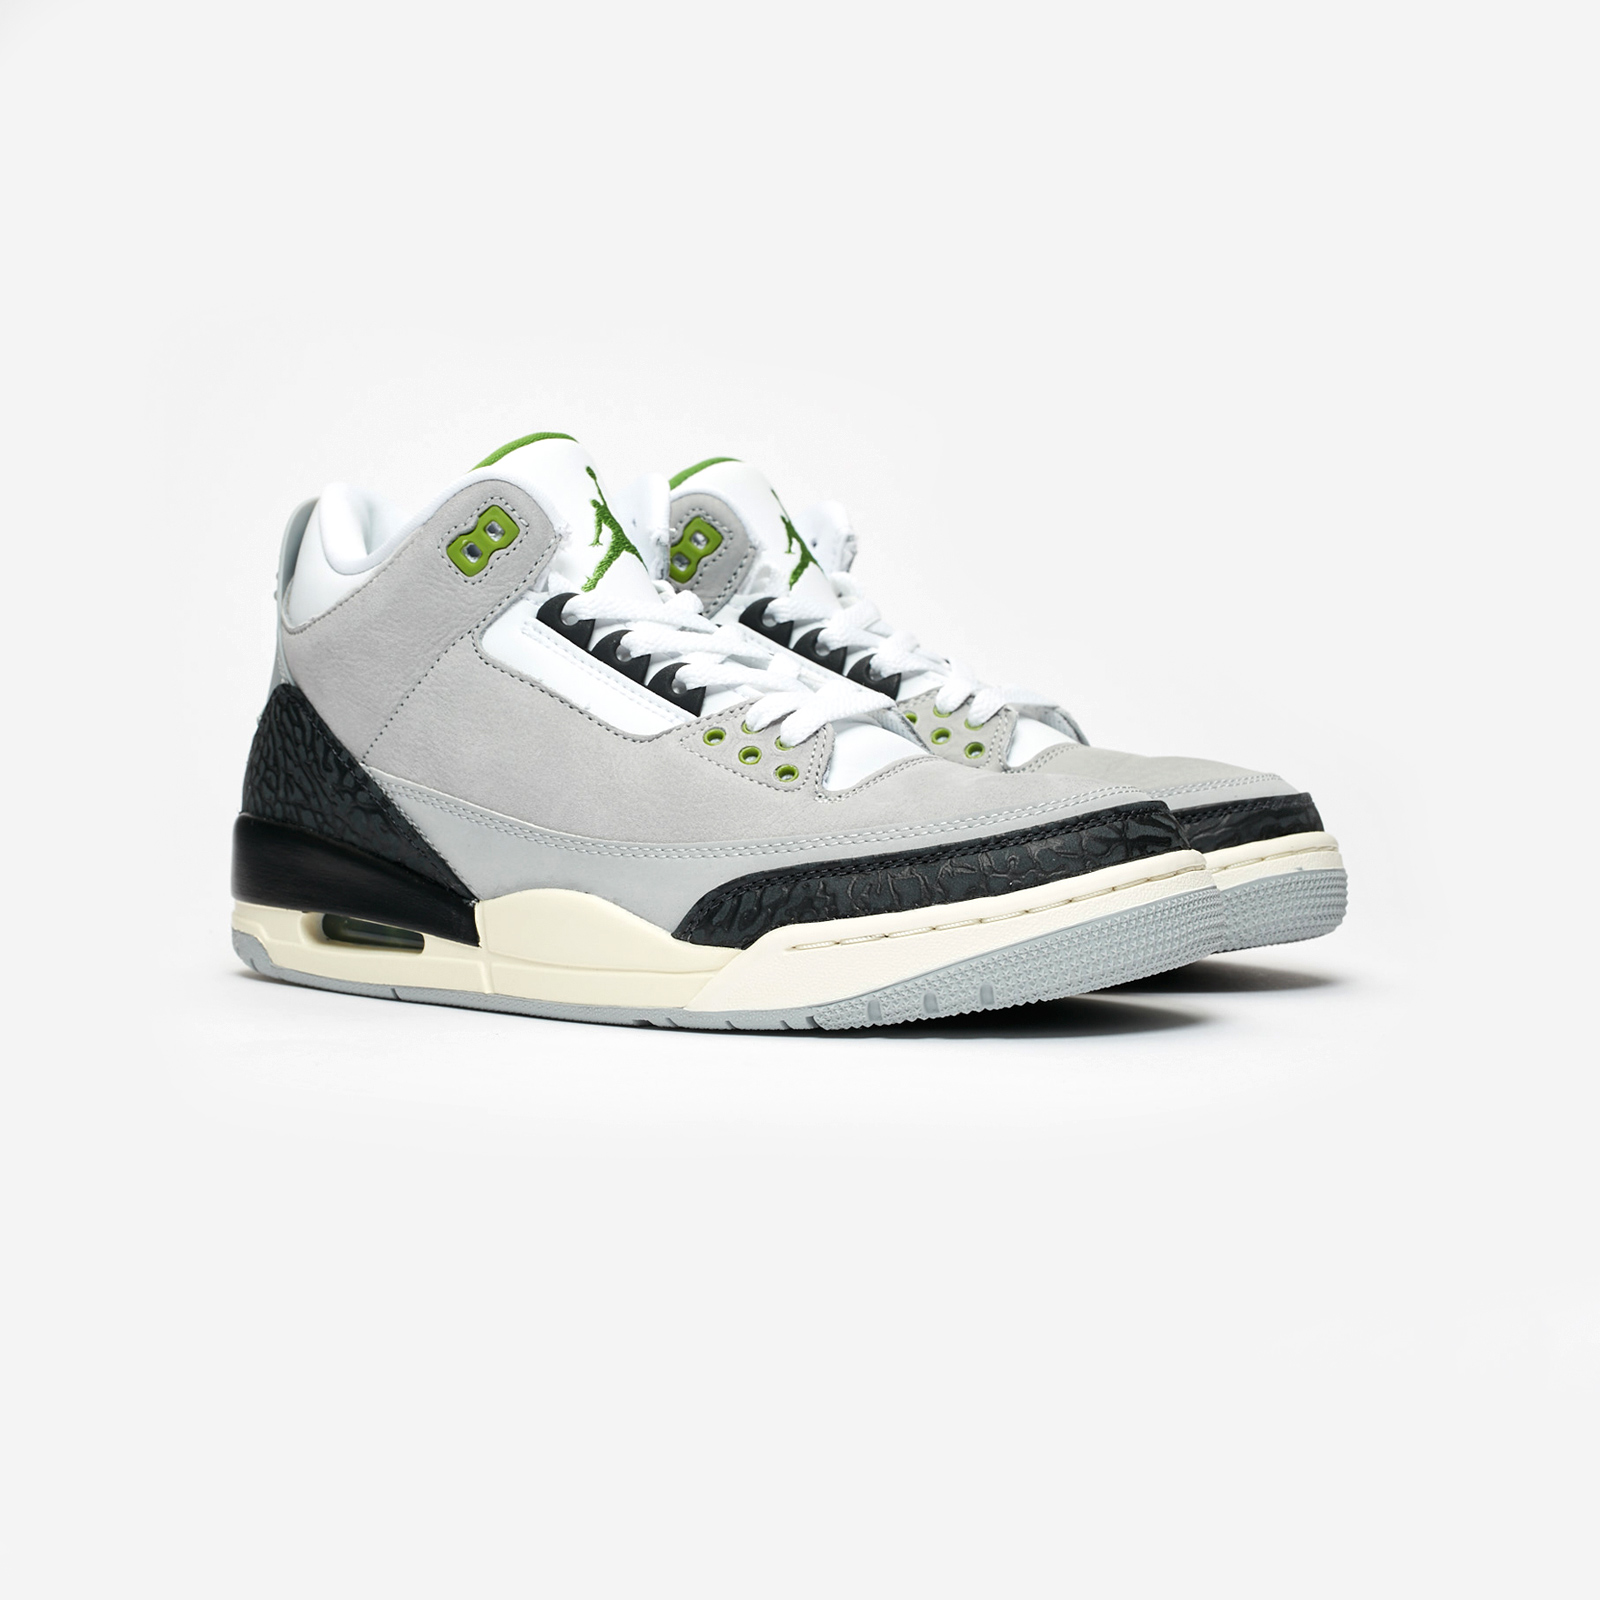 timeless design 057a7 949cf Jordan Brand Air Jordan 3 Retro